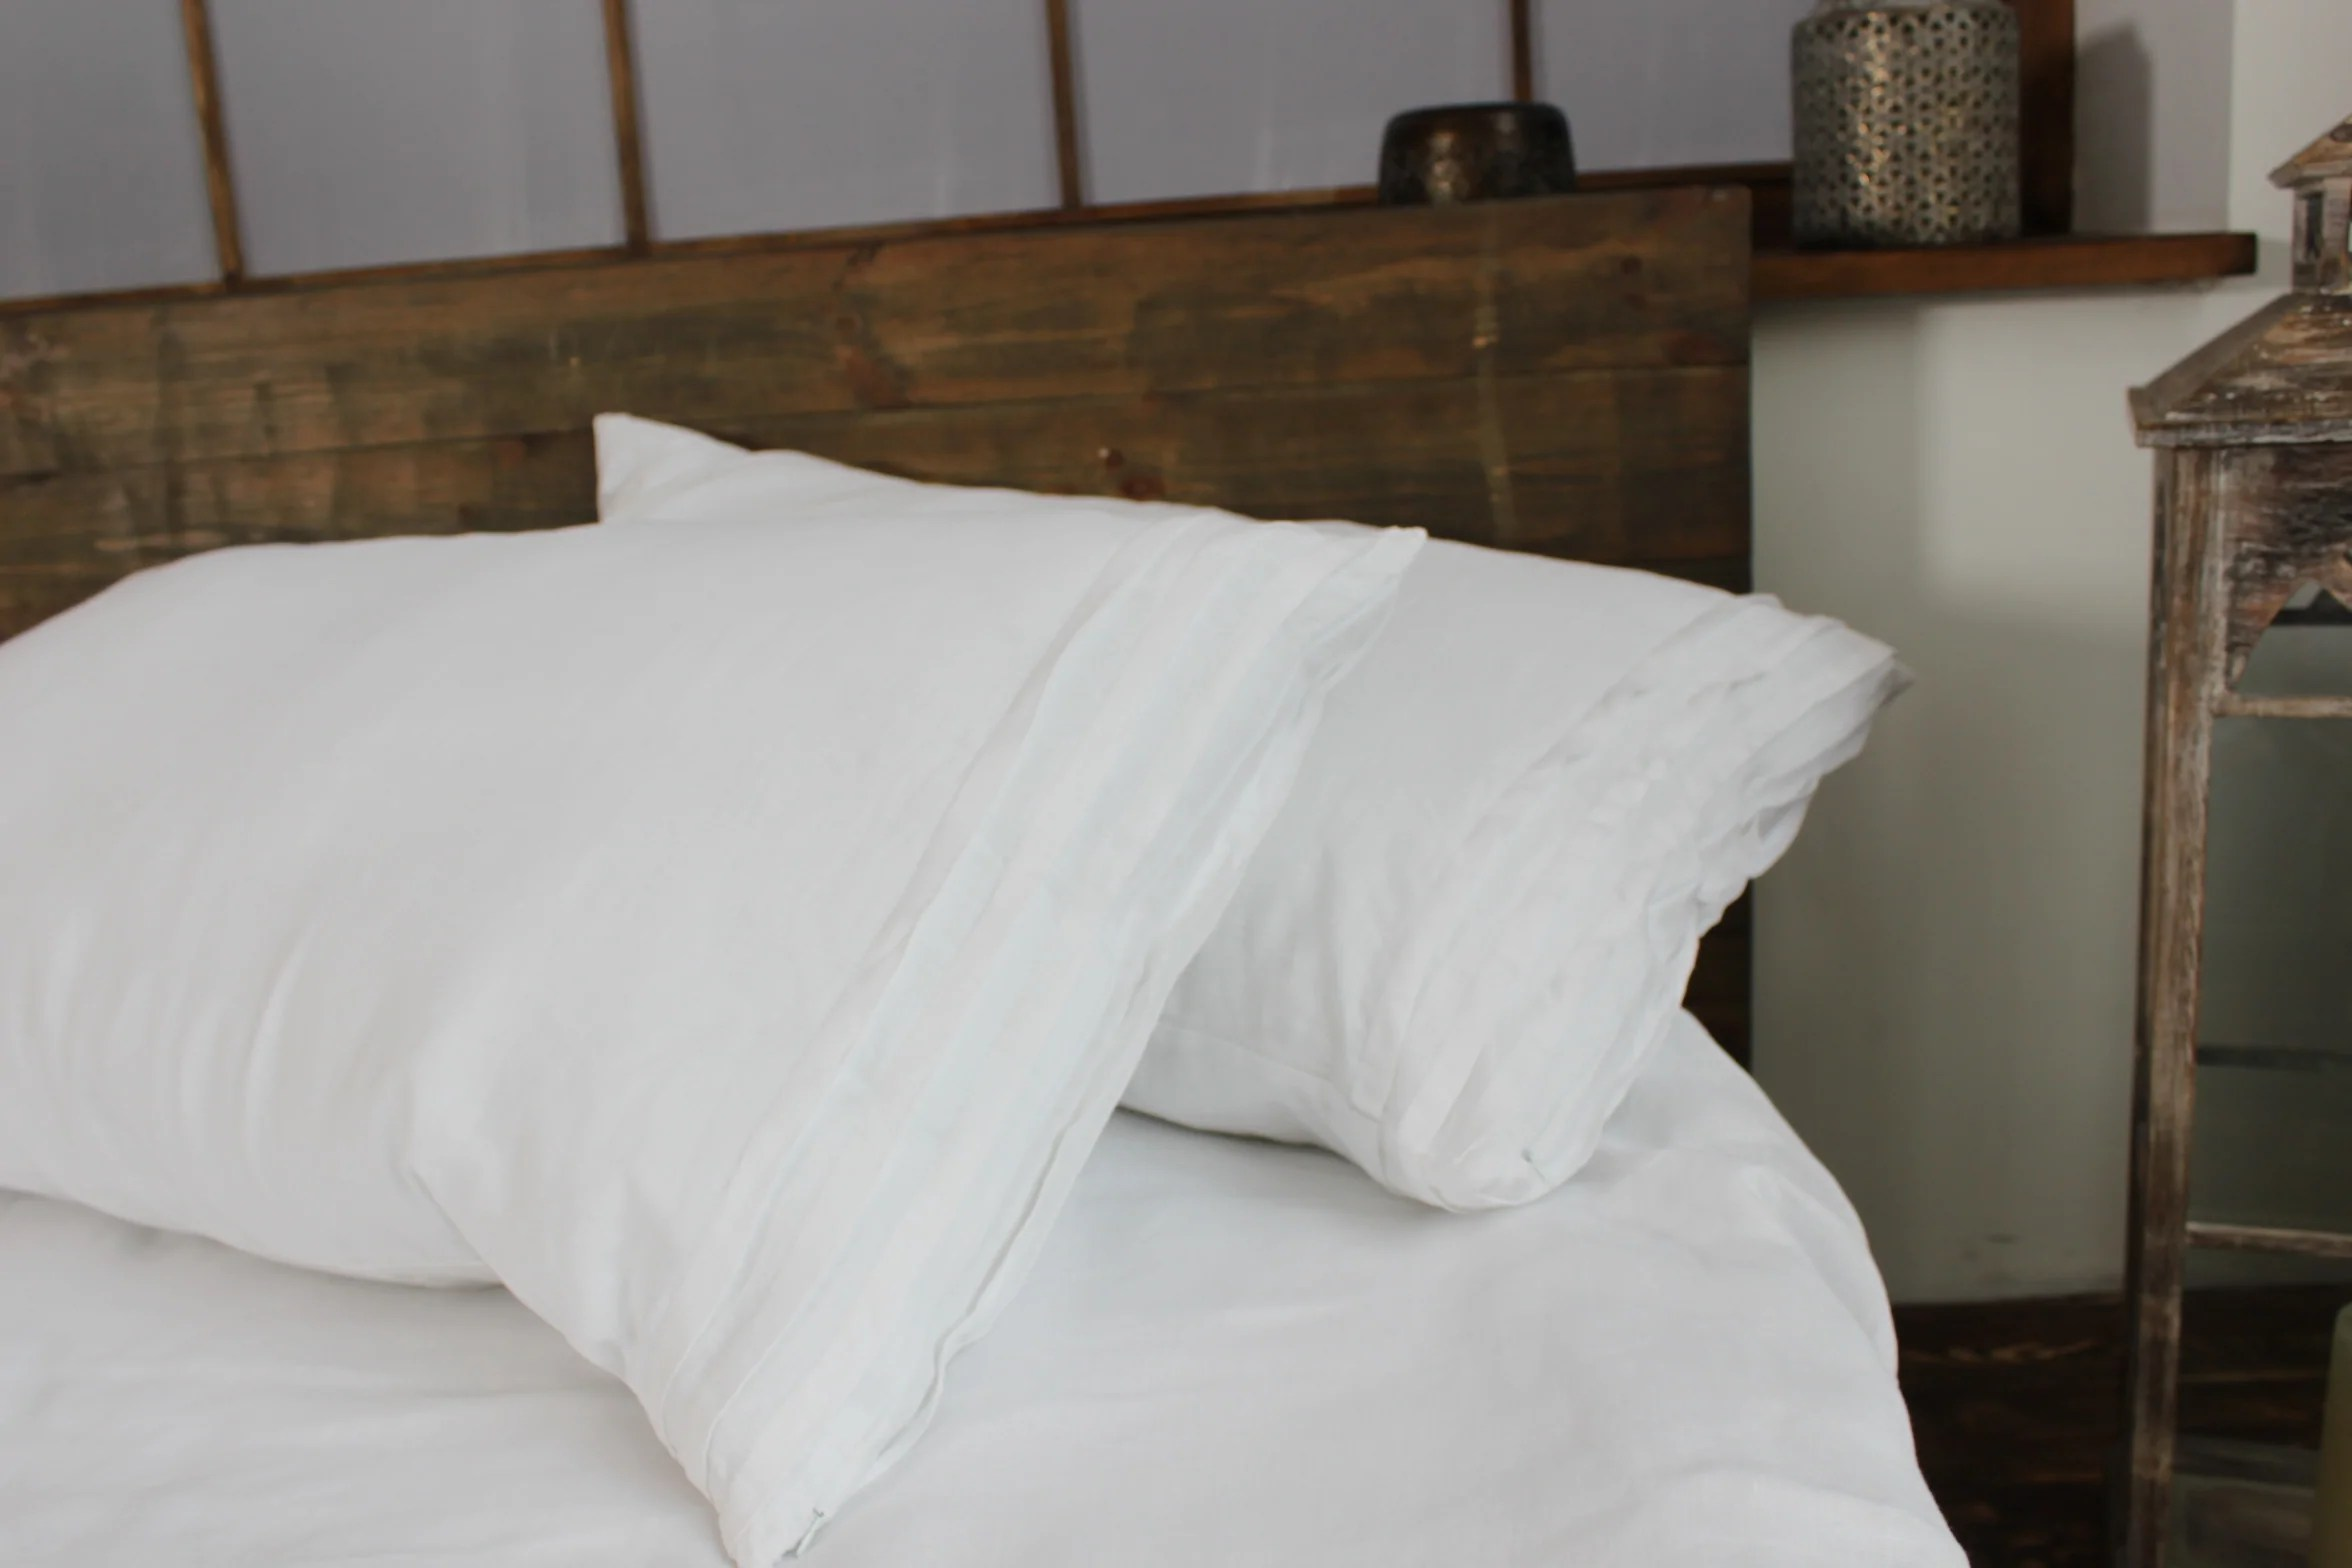 natural linen pillow sham with decorative pleats standard queen king euro sizes natural white or grey colors